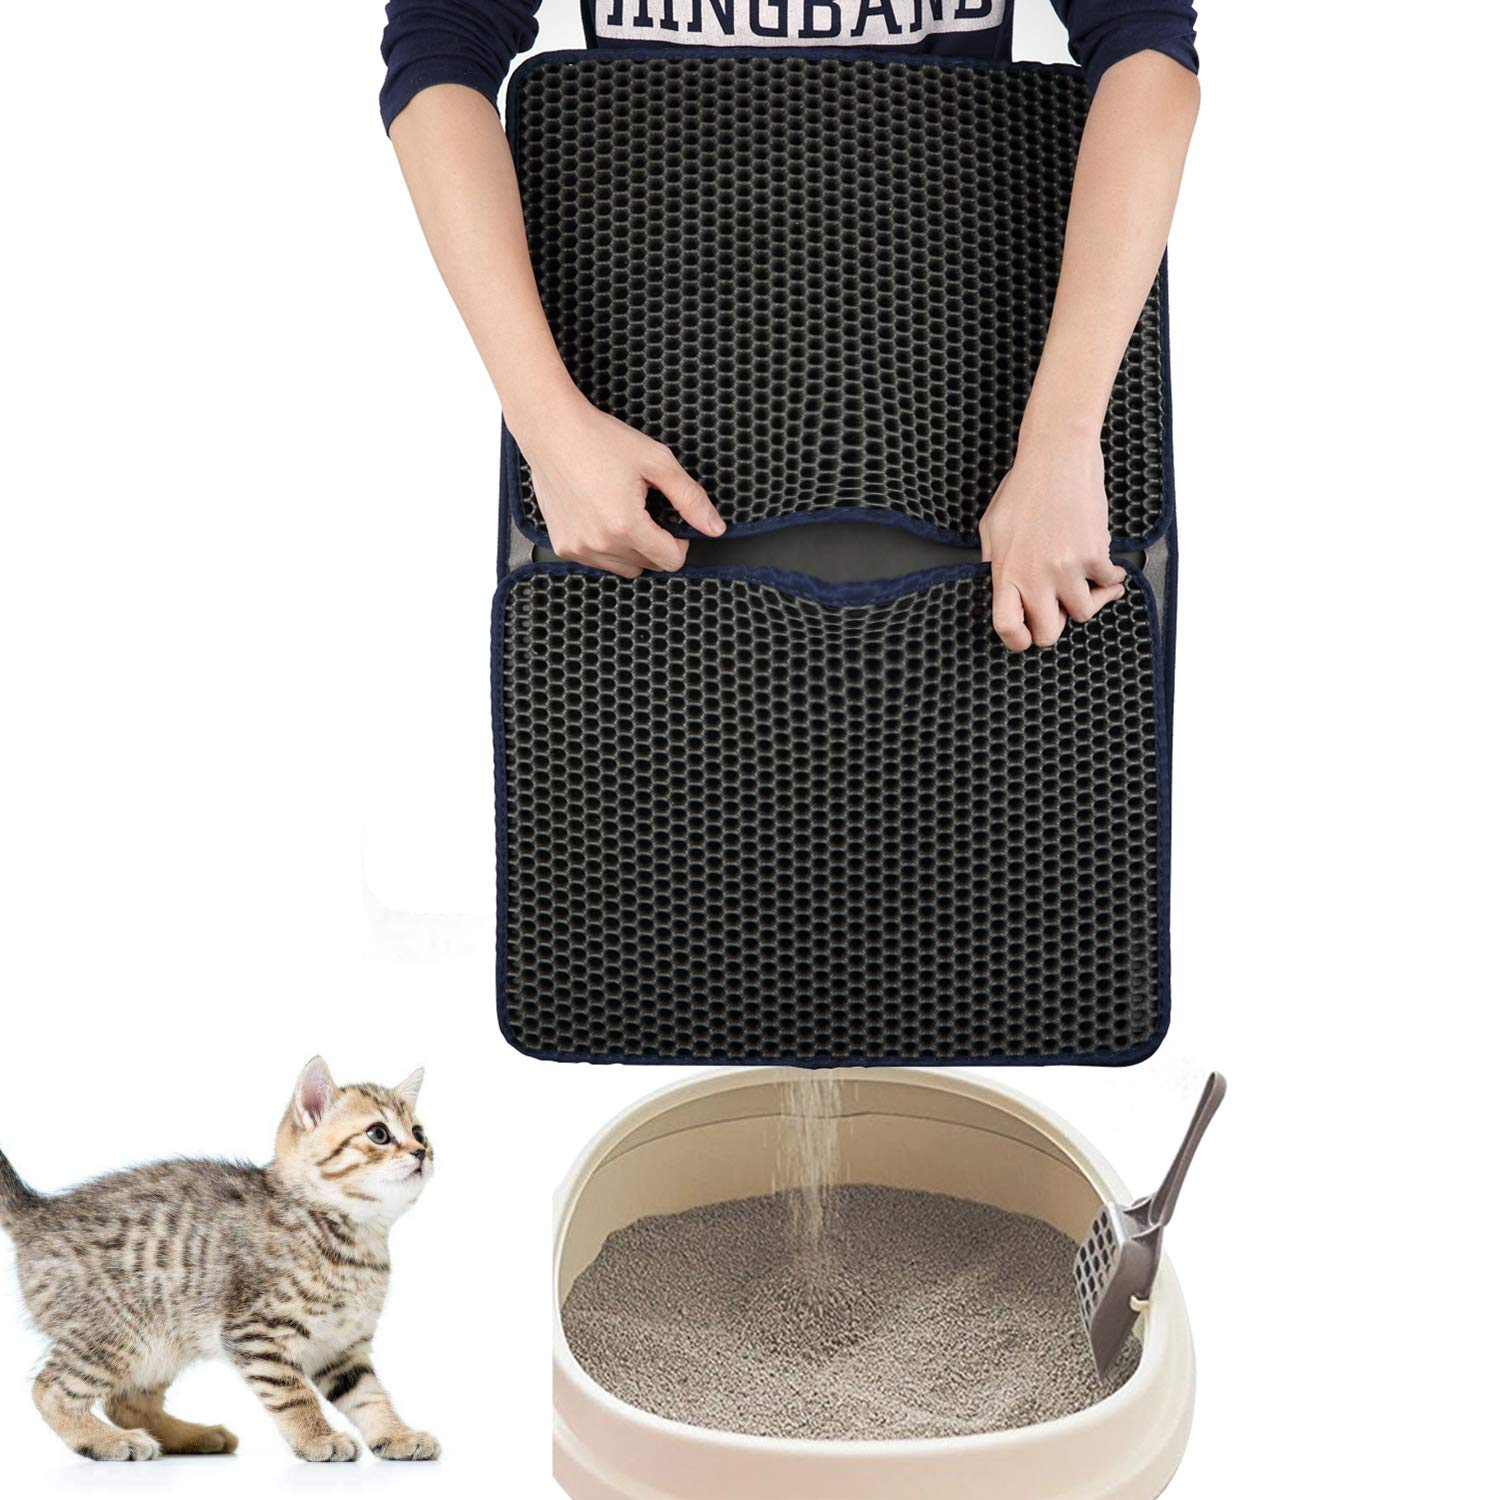 SLSON Cat Litter Mat 26.4 x18 inches, Litter Trapping Mat for Cat Waterproof Urine Proof Honeycomb Double Layer Design Trapper Mat for Litter Boxes Keep Floor Carpet Clean